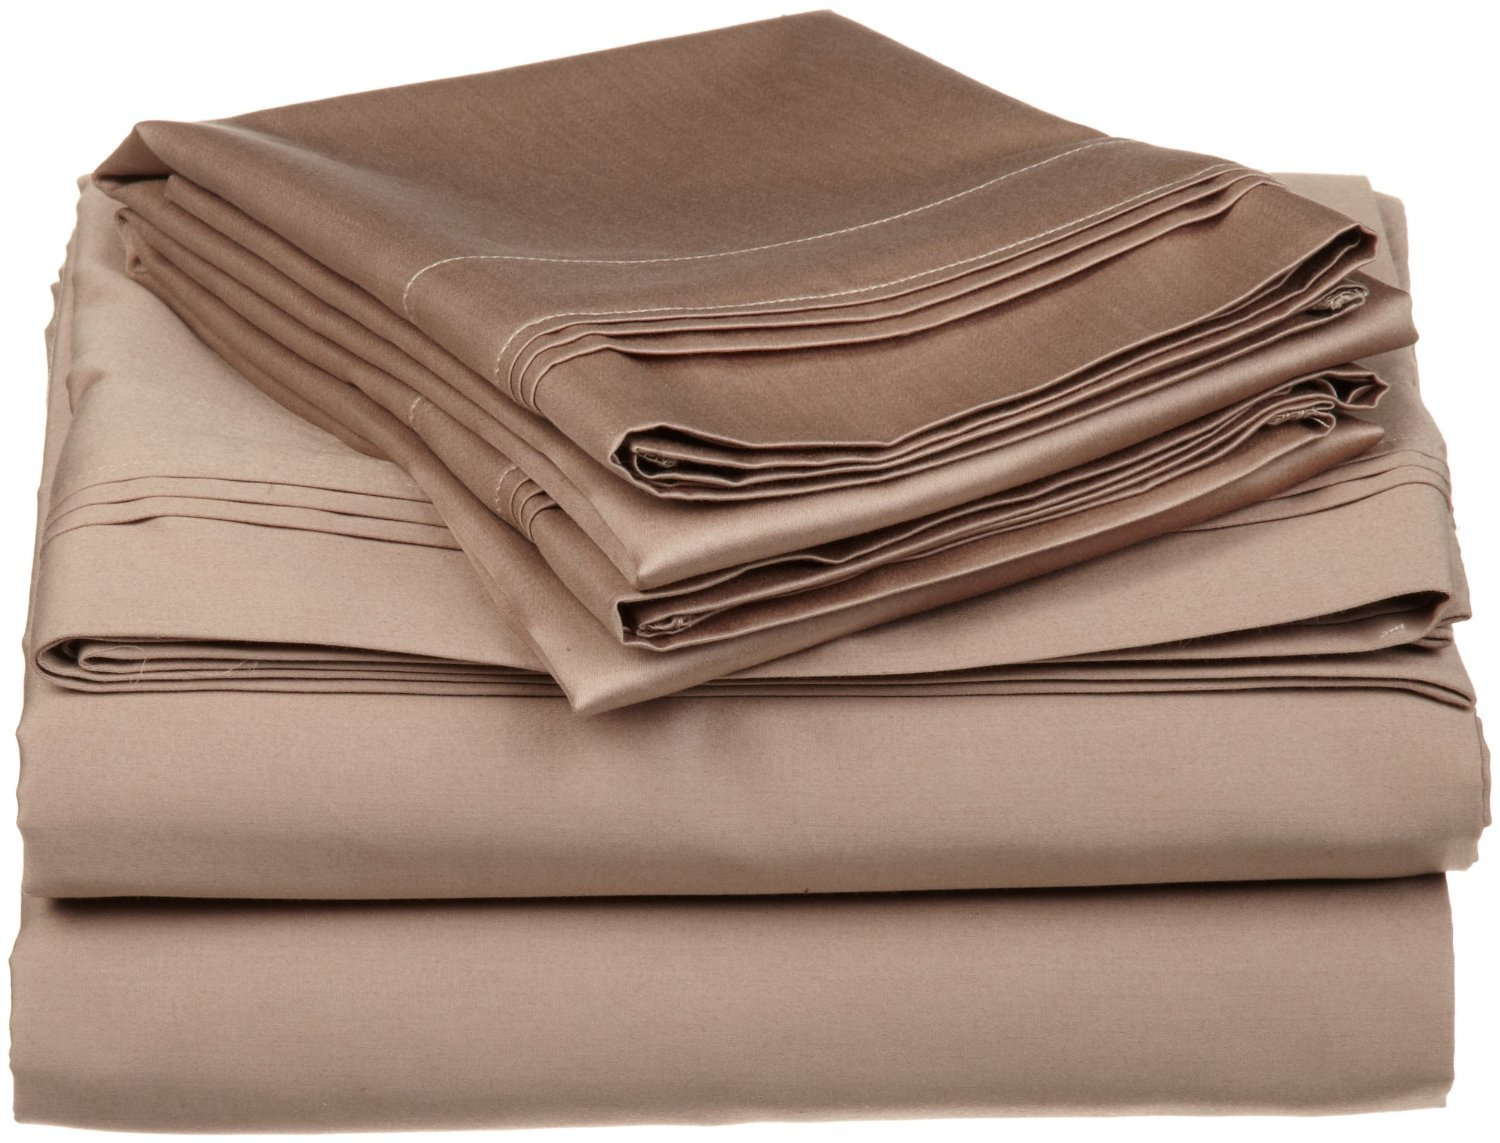 King Size Flat Sheet Only, 600 Thread Count Egyptian Cotton 1 Piece Luxury Hotel Flat Sheet/Top Sheet Taupe Solid-100% Satisfaction Guarantee